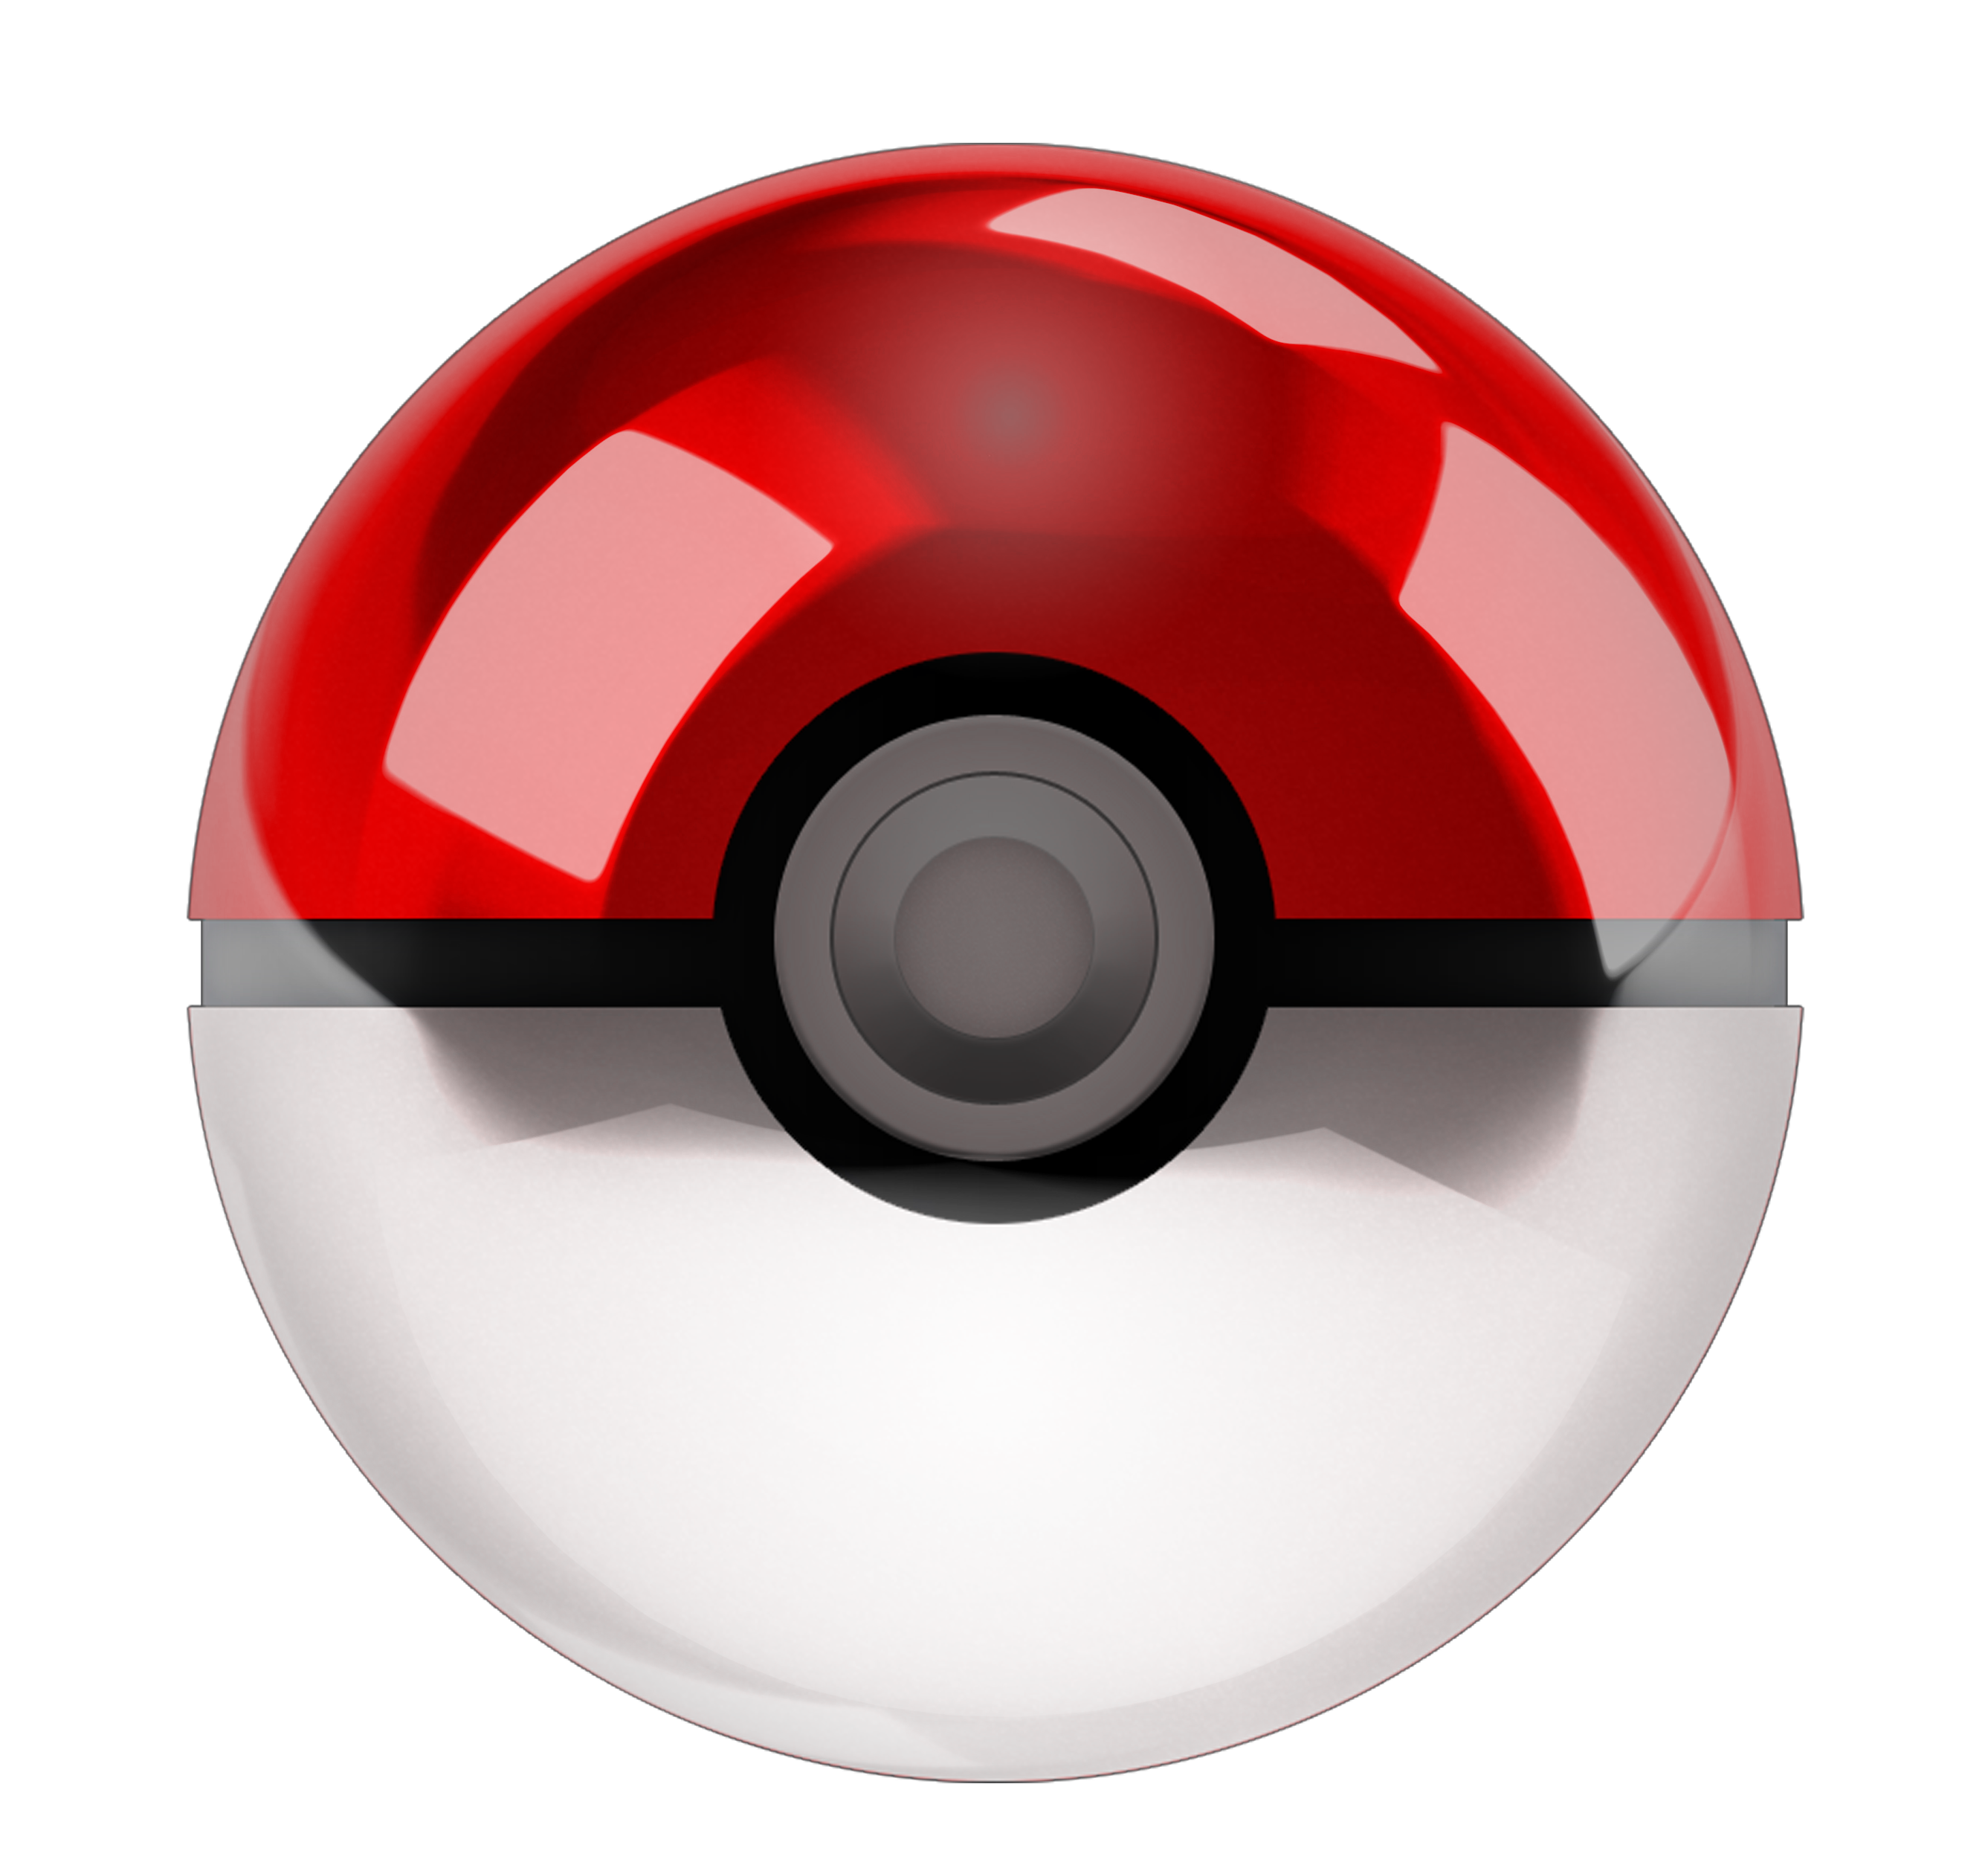 Pokeball clipart pokemon free. Png image purepng transparent